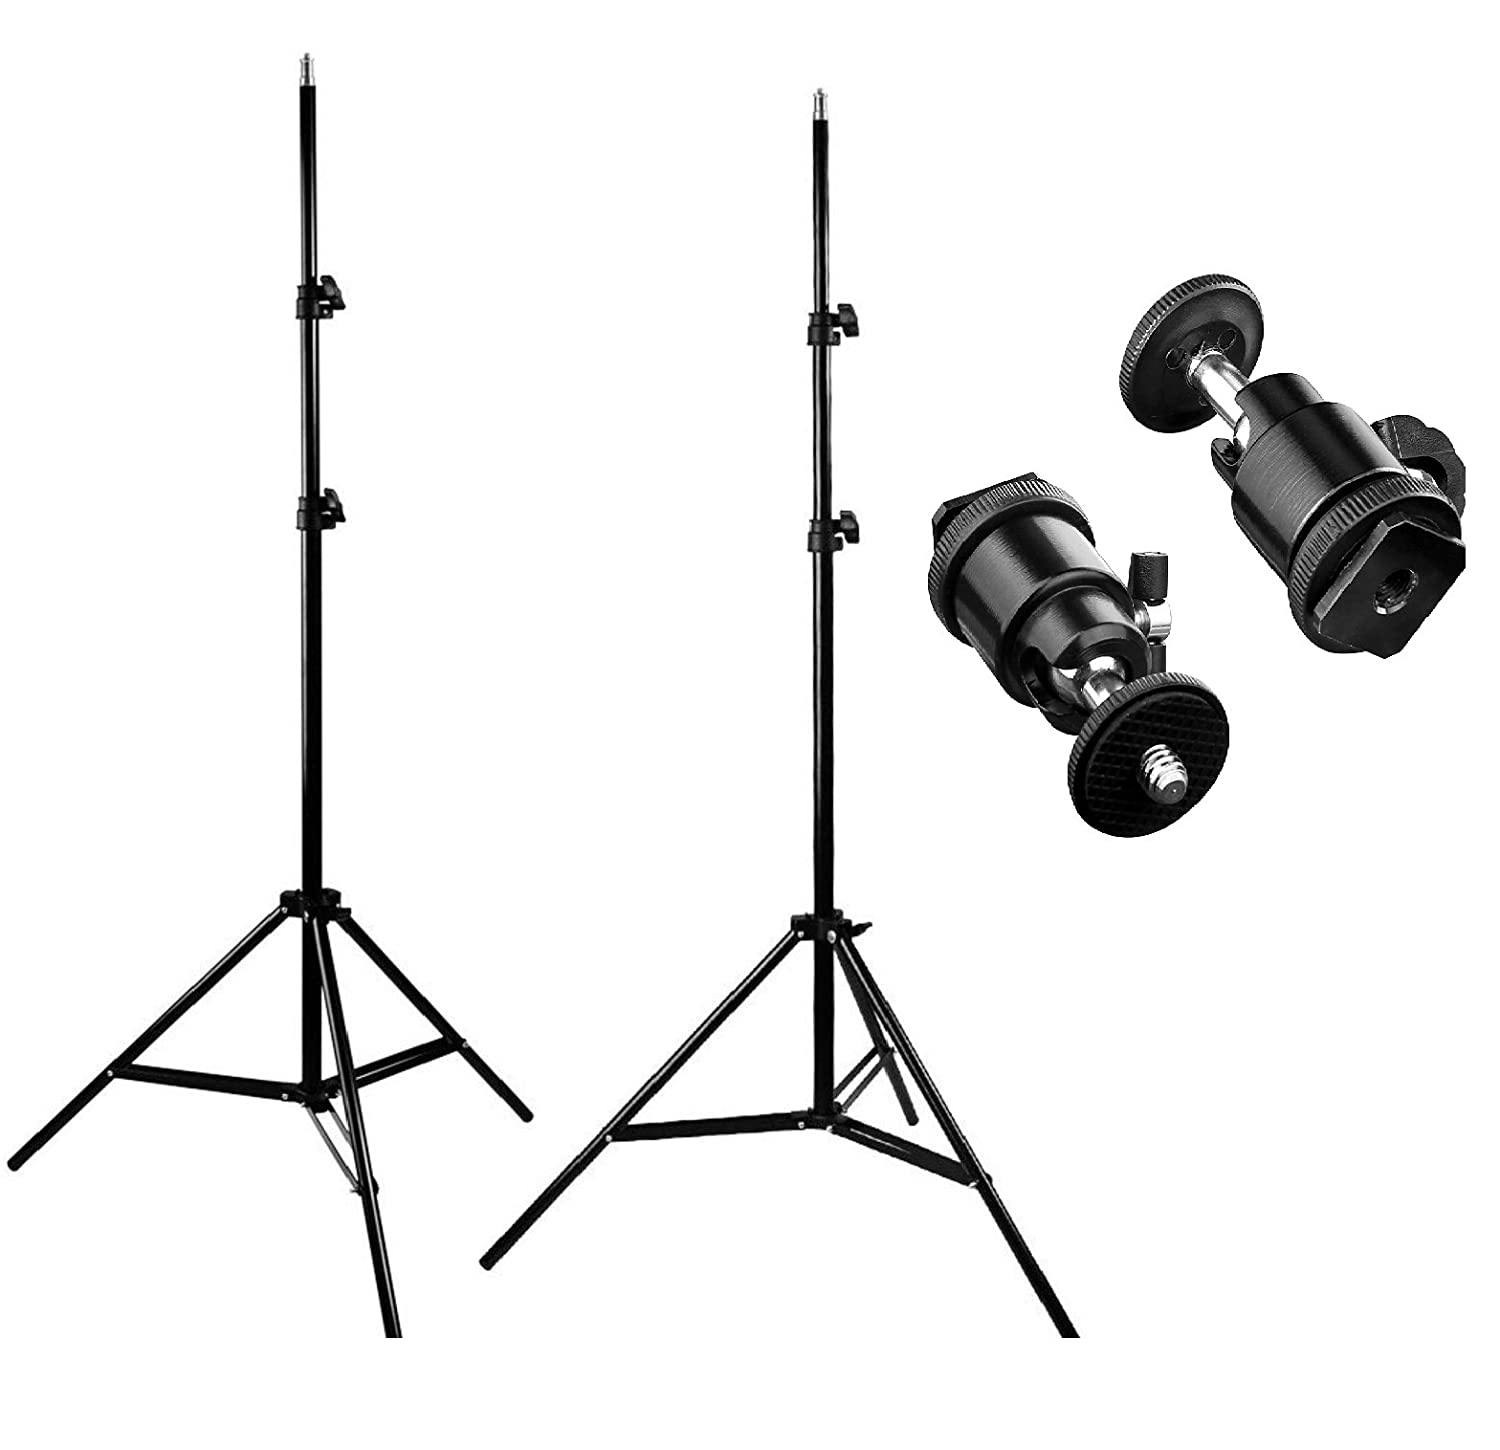 2 Packs 7ft Adjustable Light Stands 2 Packs 1/4-inch Screw Tripod Mini Ball Head Hot Shoe Adapters HTC Vive VR, Video Product Photography CanadianStudio